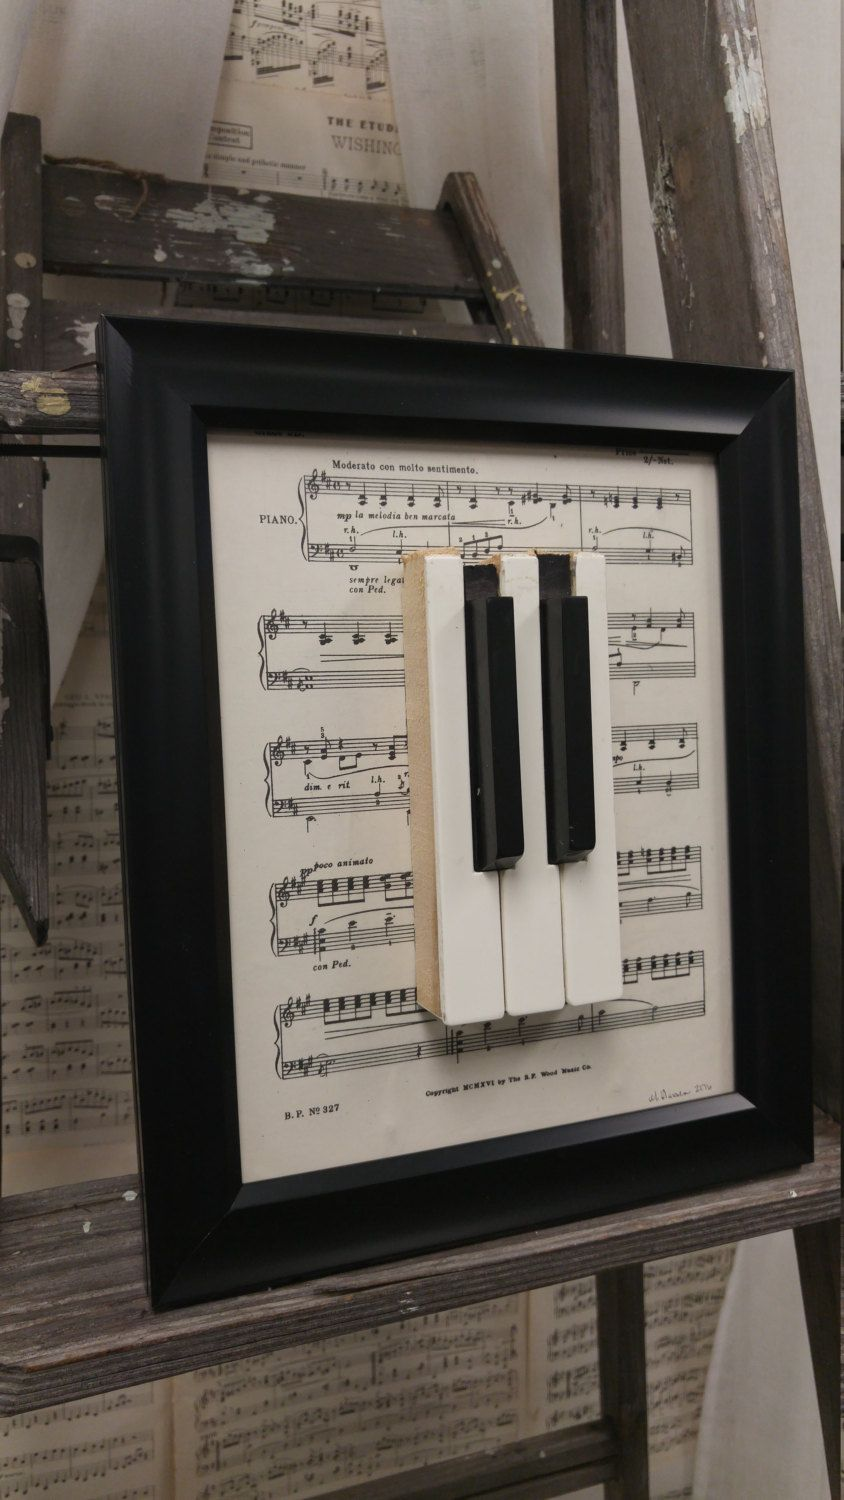 Empty room with chair violin and sheet music on floor photograph - Piano Keys Framed Art Decor With 8 X 10 Black Frame And Vintage Sheet Music Upcycled Piano Keys Piano Art Piano Decor